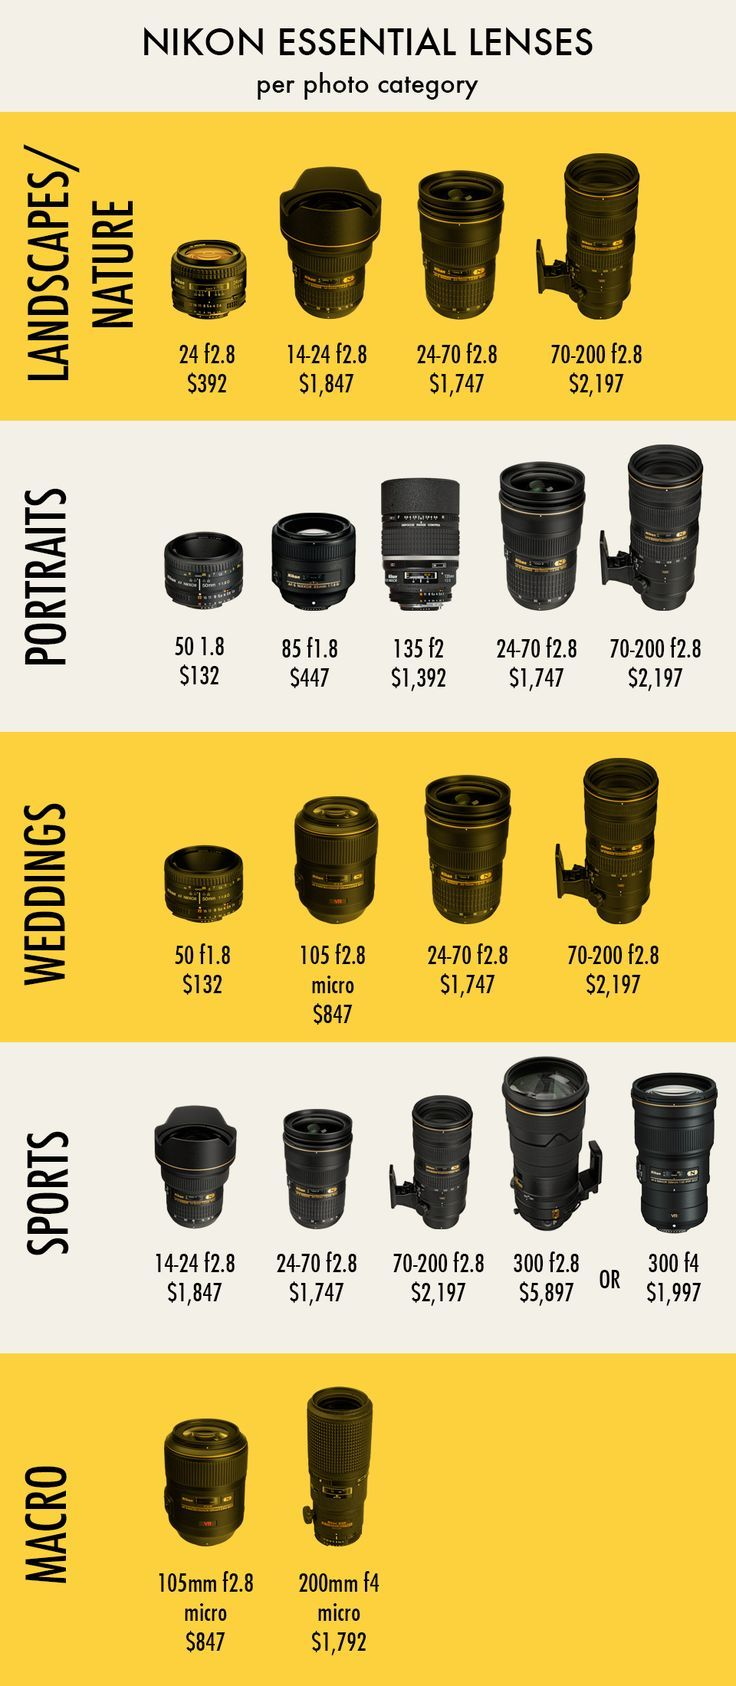 nikon and canon lens price comparison #infografias #infographic